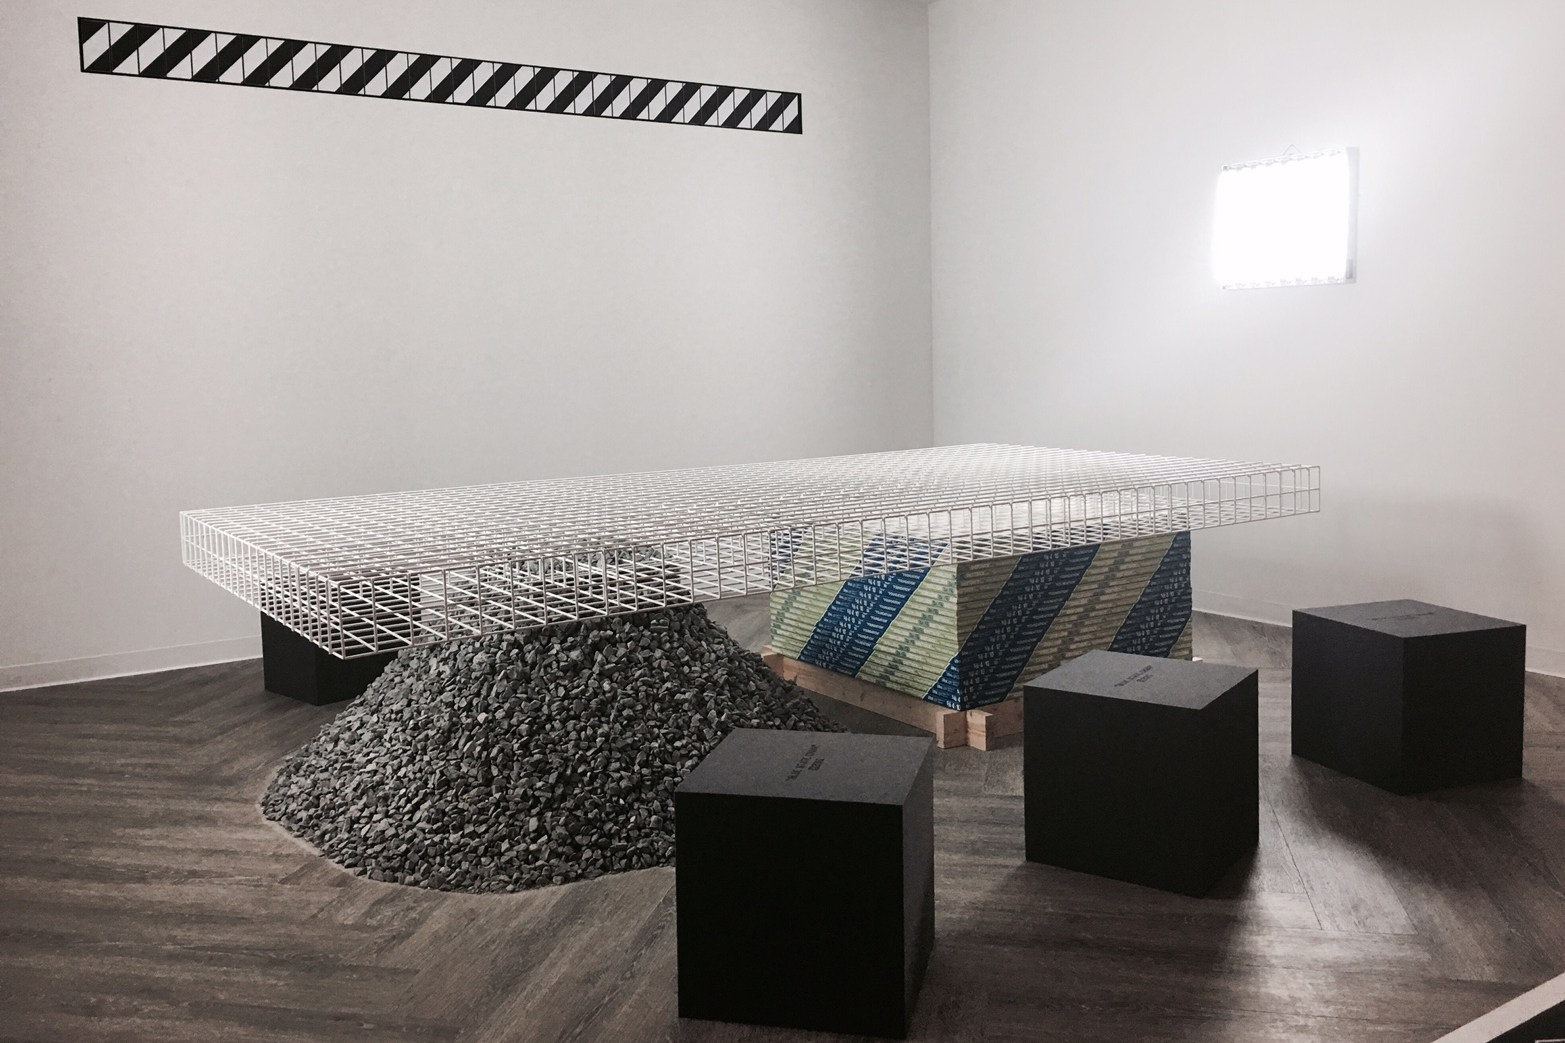 Virgil Abloh Will Reveal New Furniture Designs at Art Basel Miami Beach